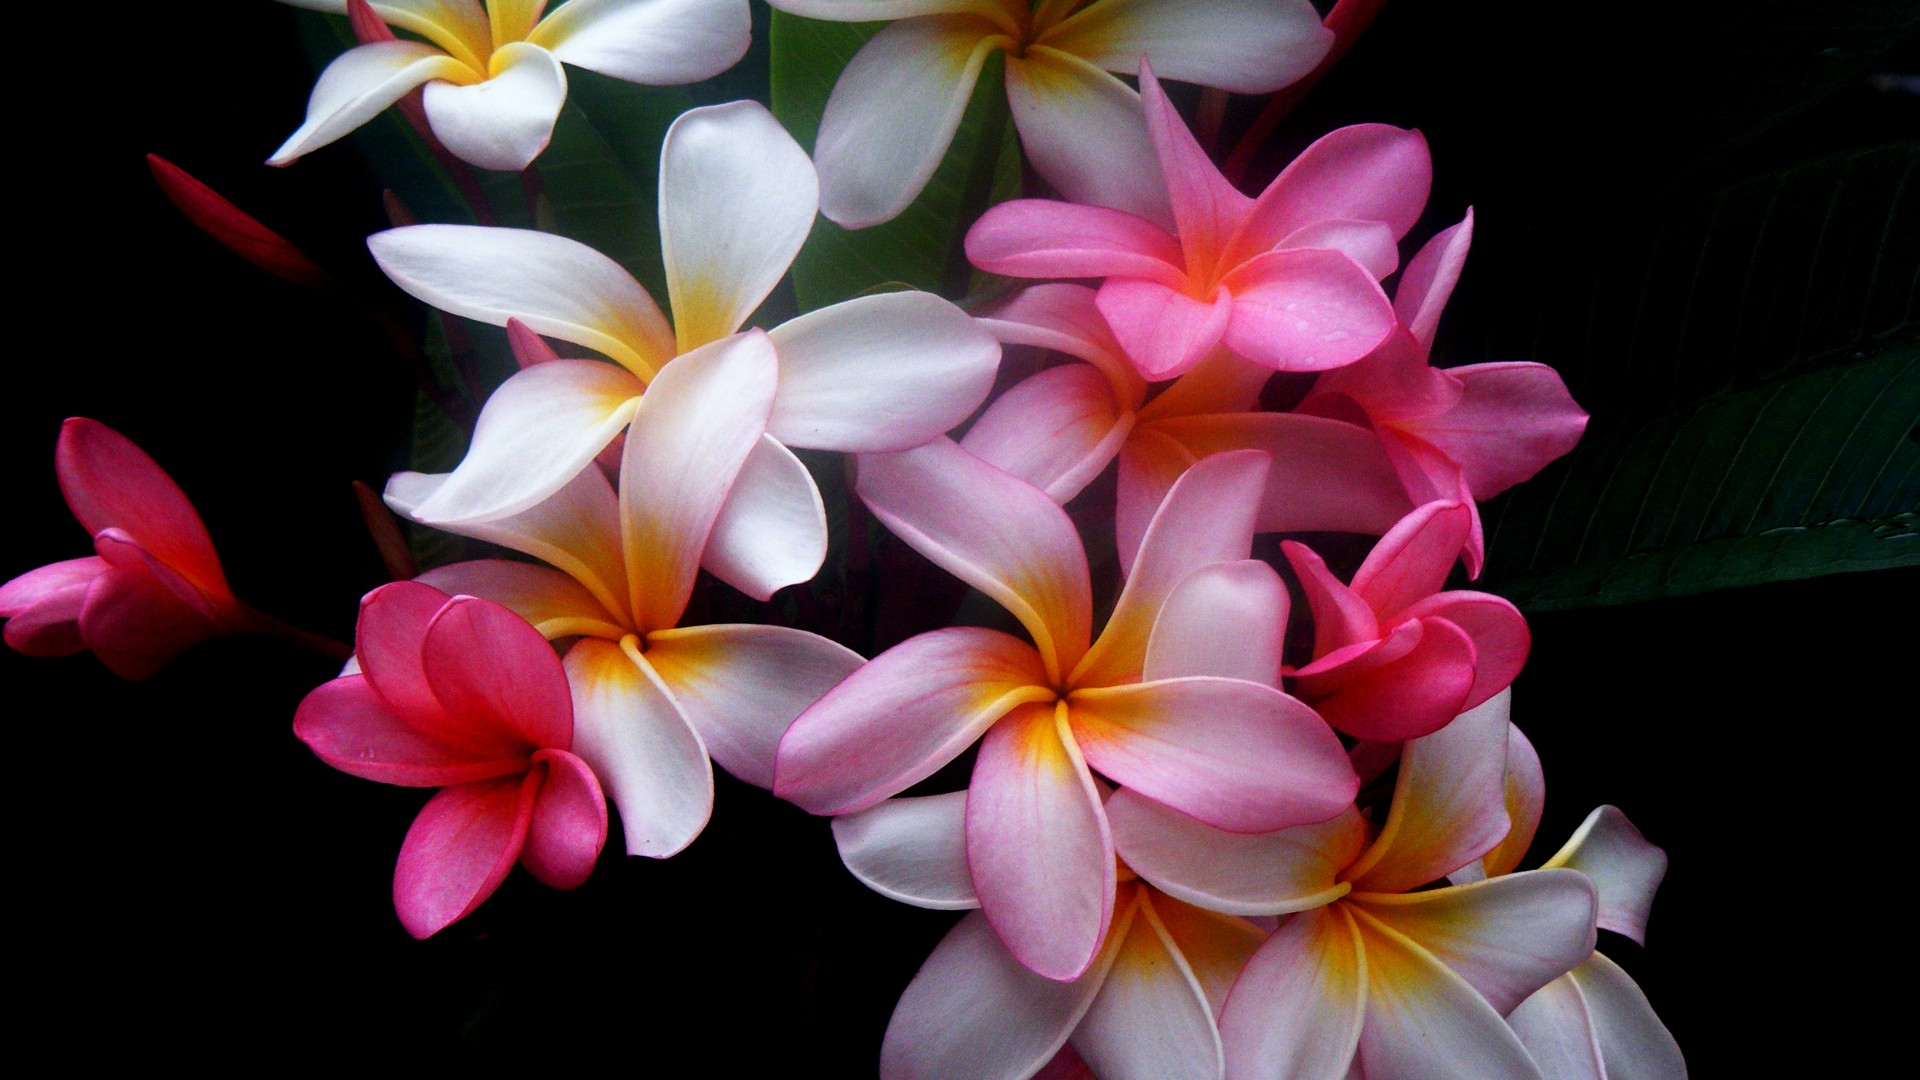 beautiful-flowers-wallpapers_27664_1920x1080